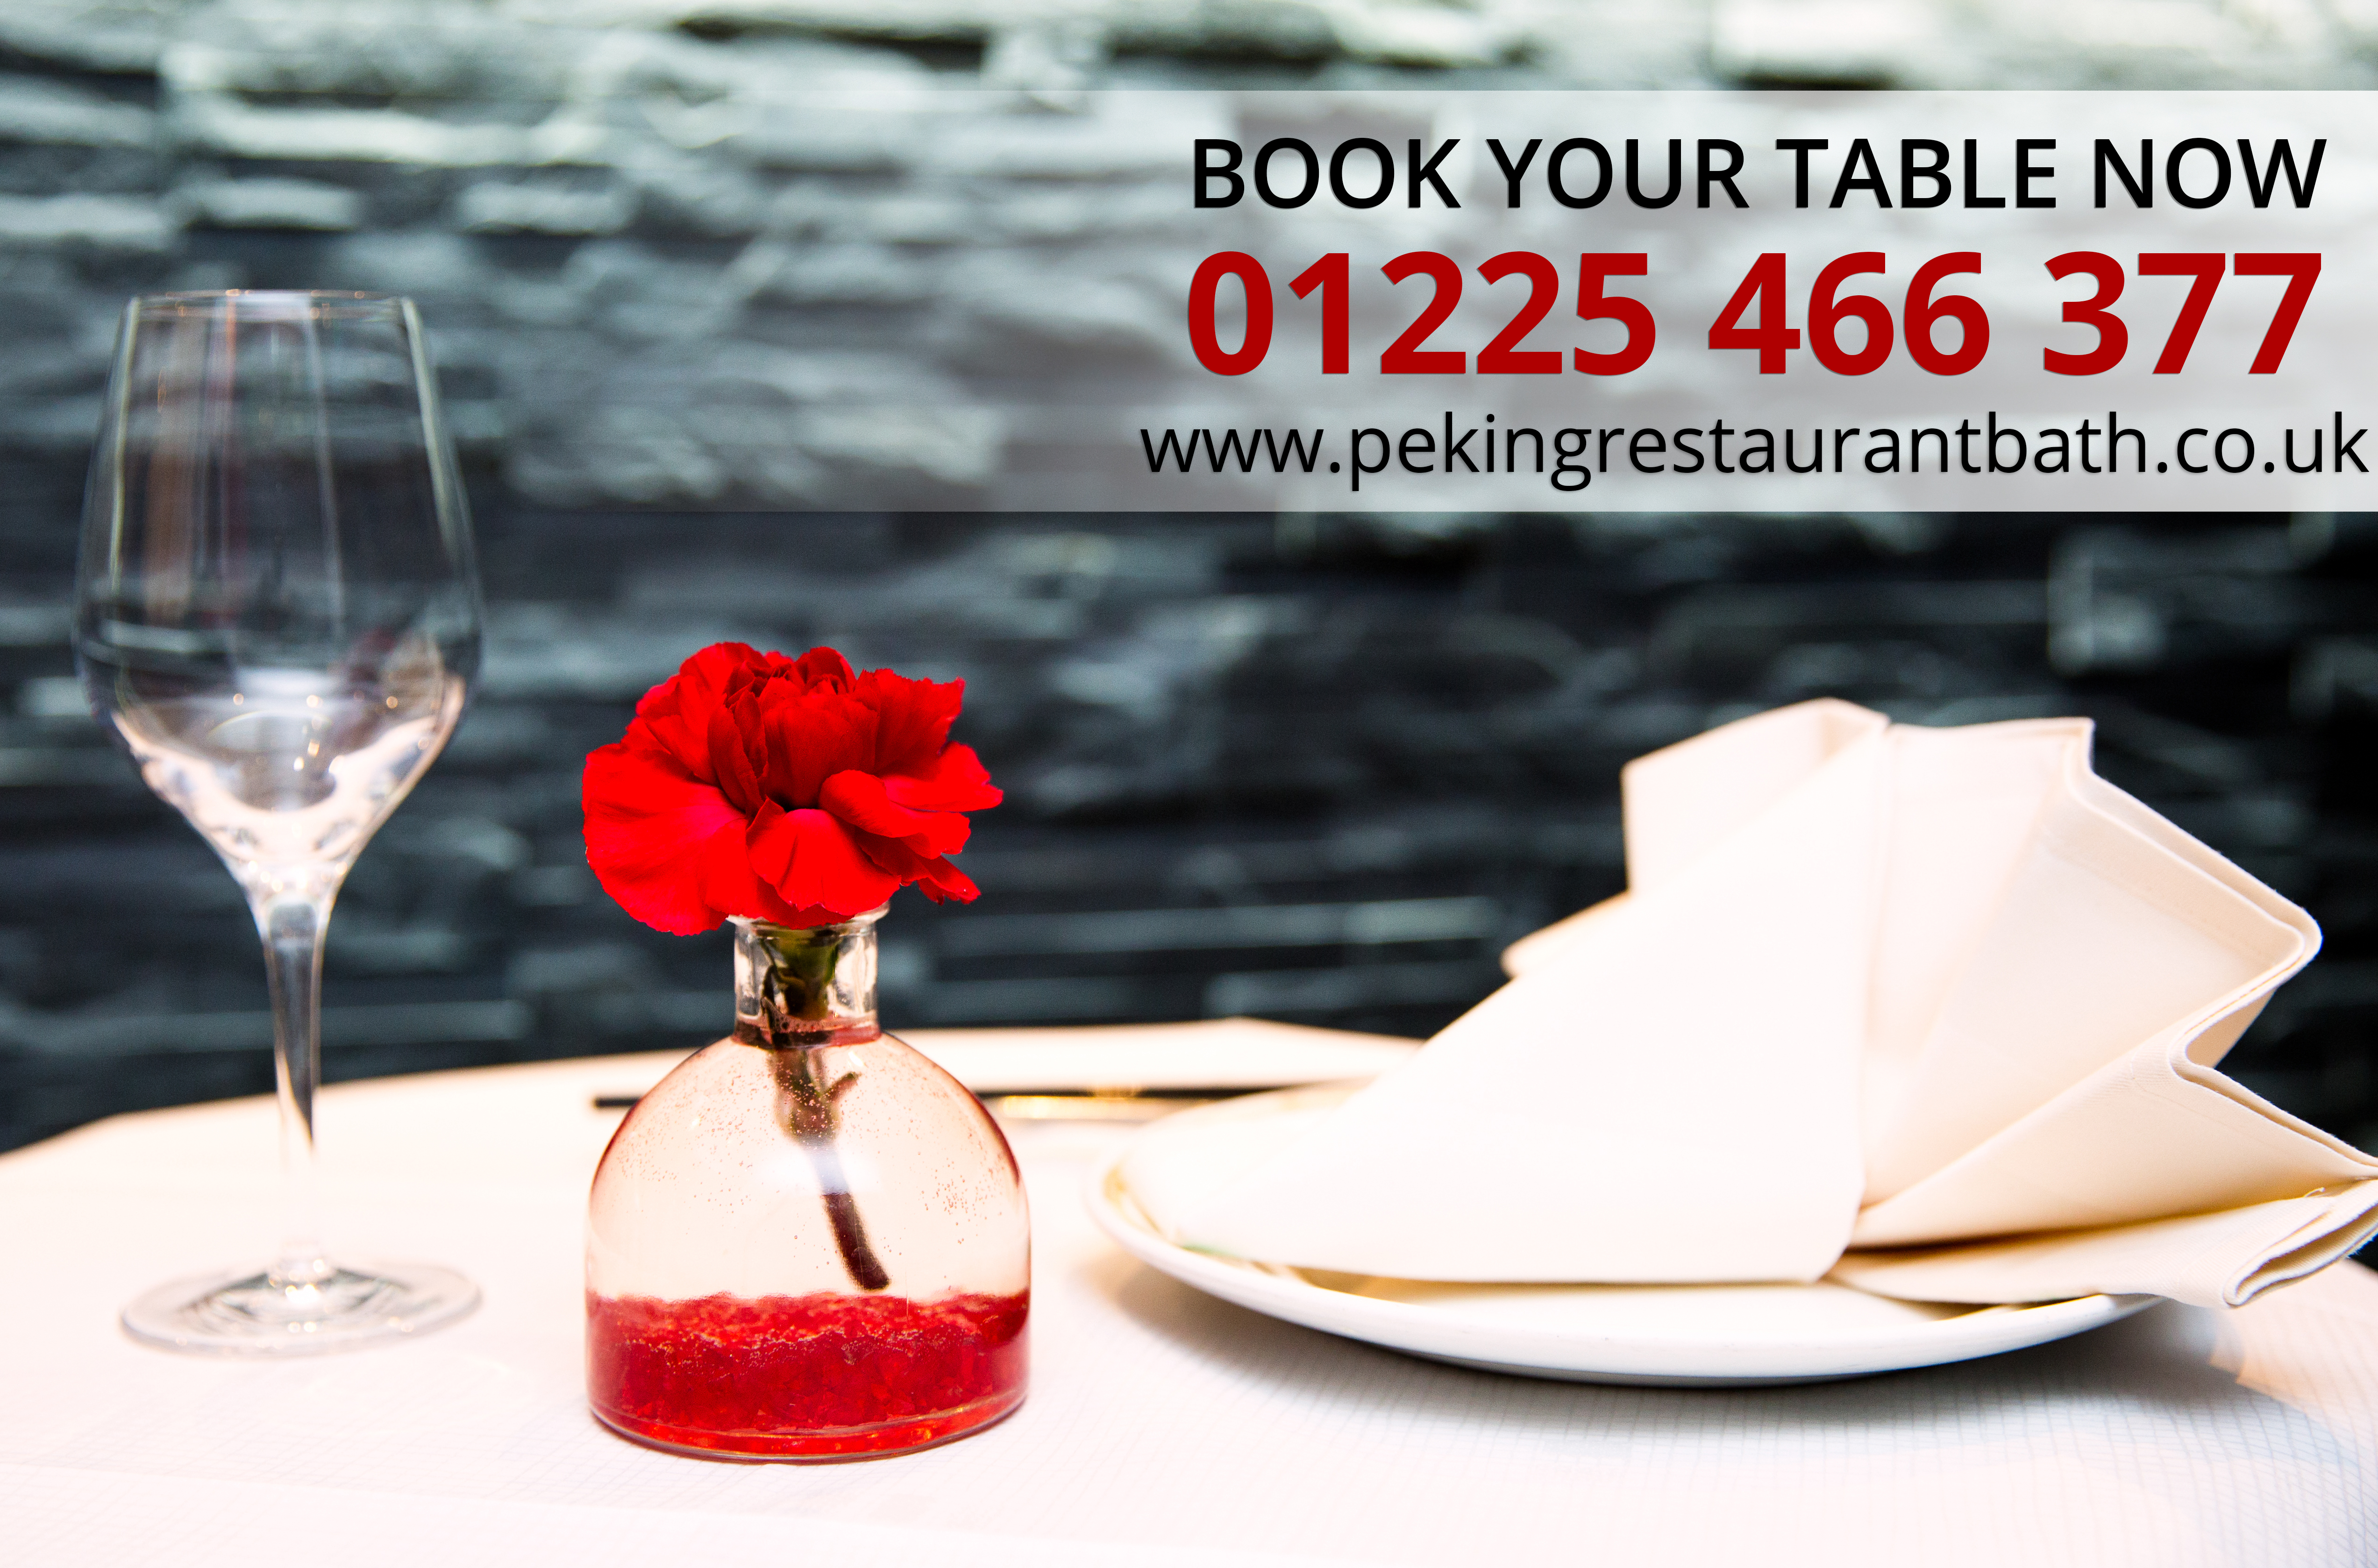 Book Your Table Now | 01225 466 377